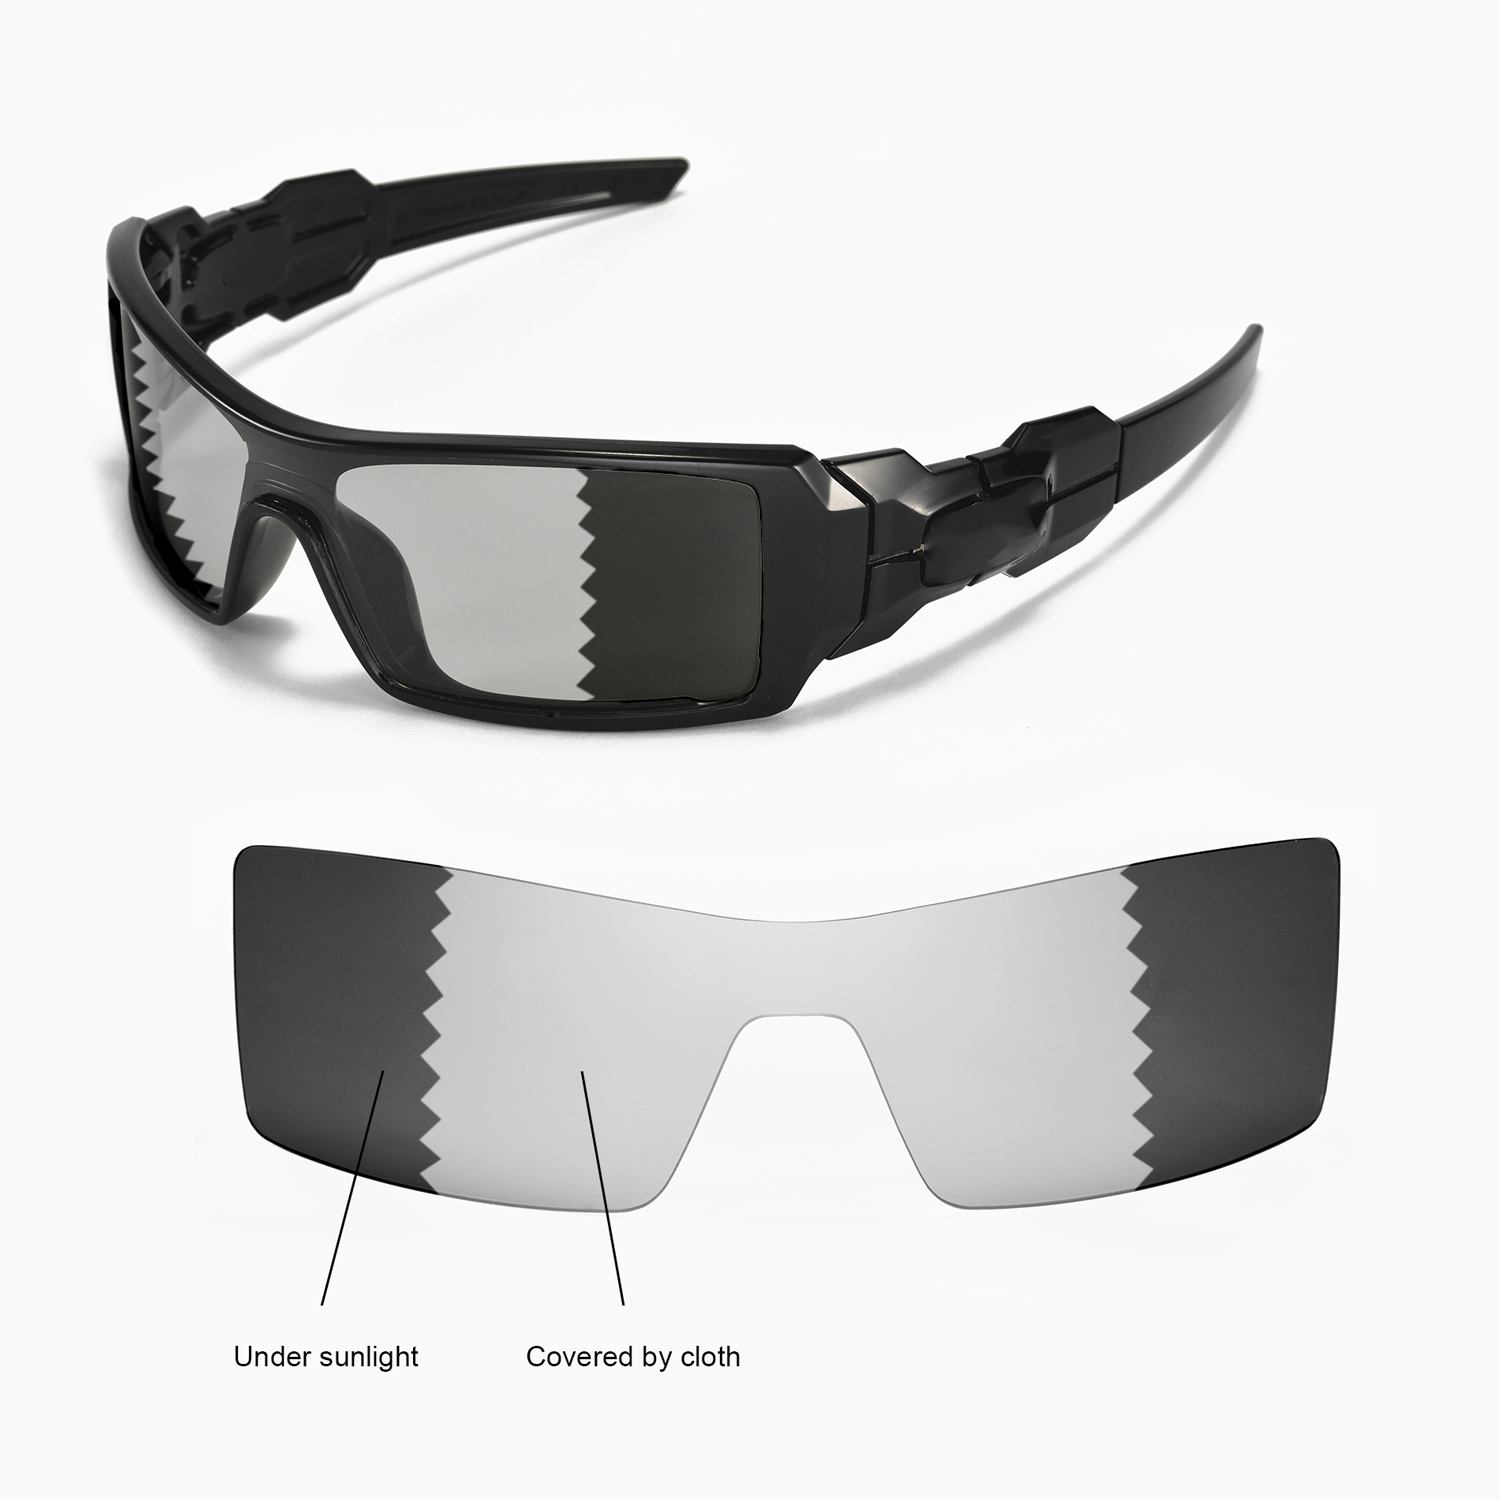 bbd8866668f Details about New Walleva Polarized Transition Photochromic Lenses For  Oakley Oil Rig